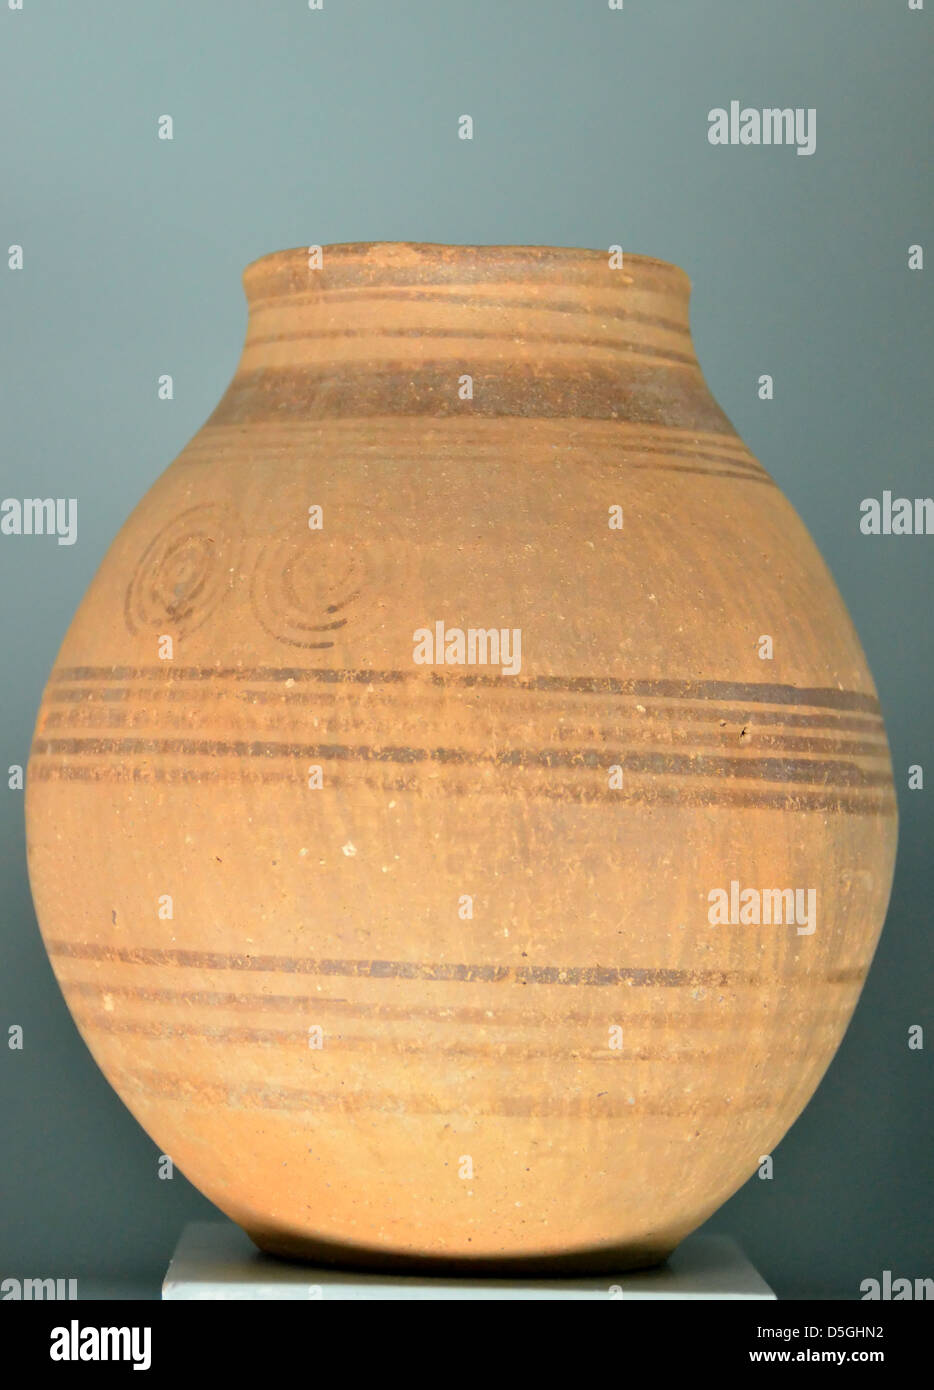 Ancient greek vase from the geometric age (700-900 BC). - Stock Image